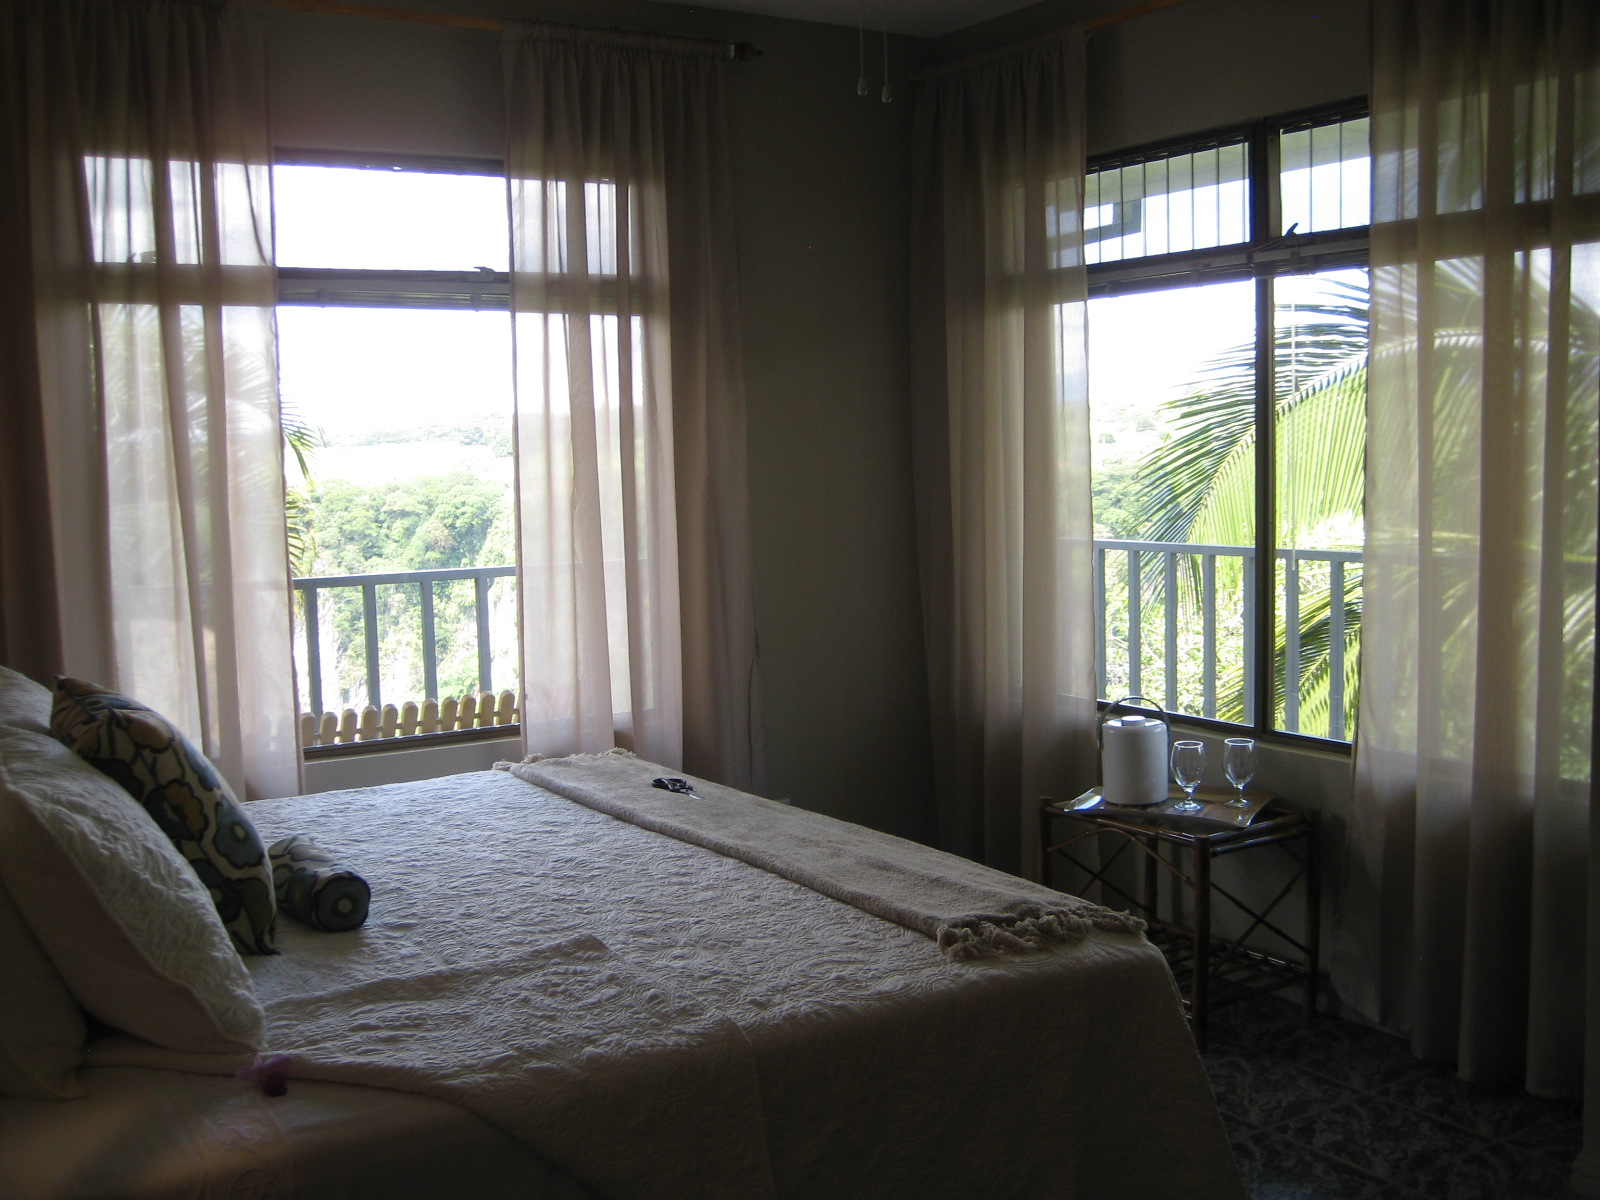 Room 7 view 3